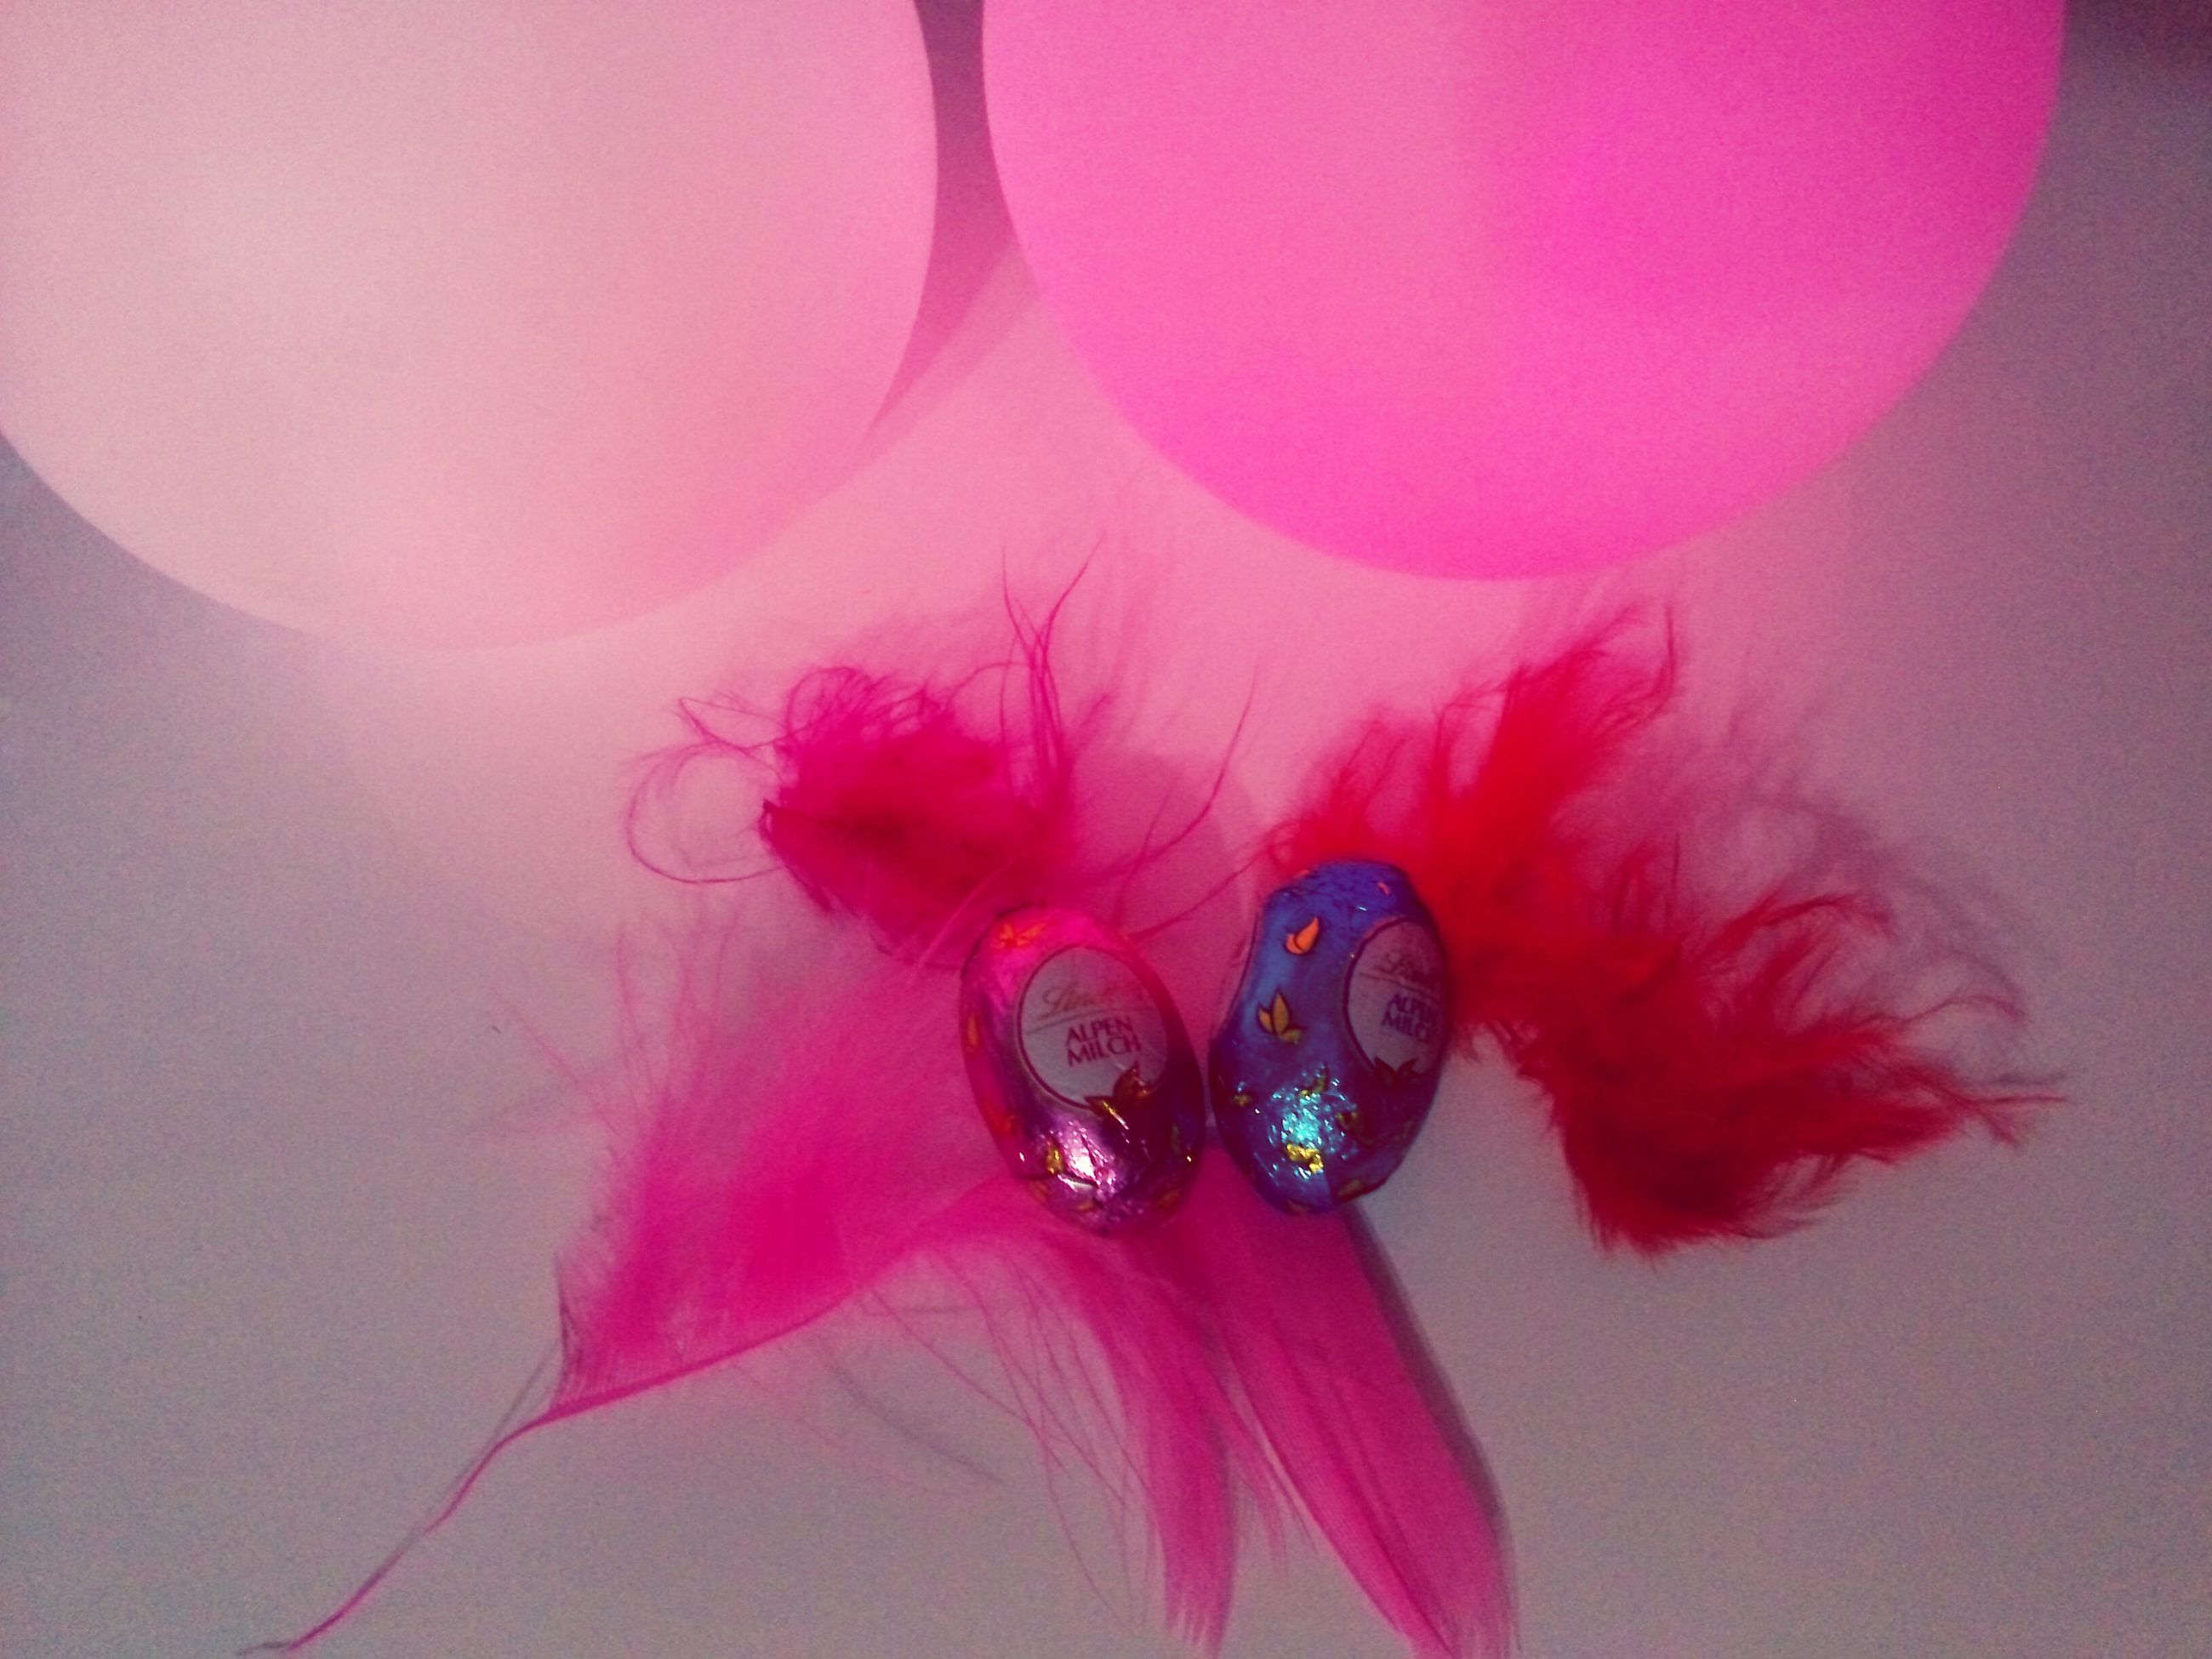 indoors, pink color, close-up, flower, fragility, still life, decoration, studio shot, red, high angle view, multi colored, no people, petal, table, glass - material, transparent, variation, reflection, freshness, pink